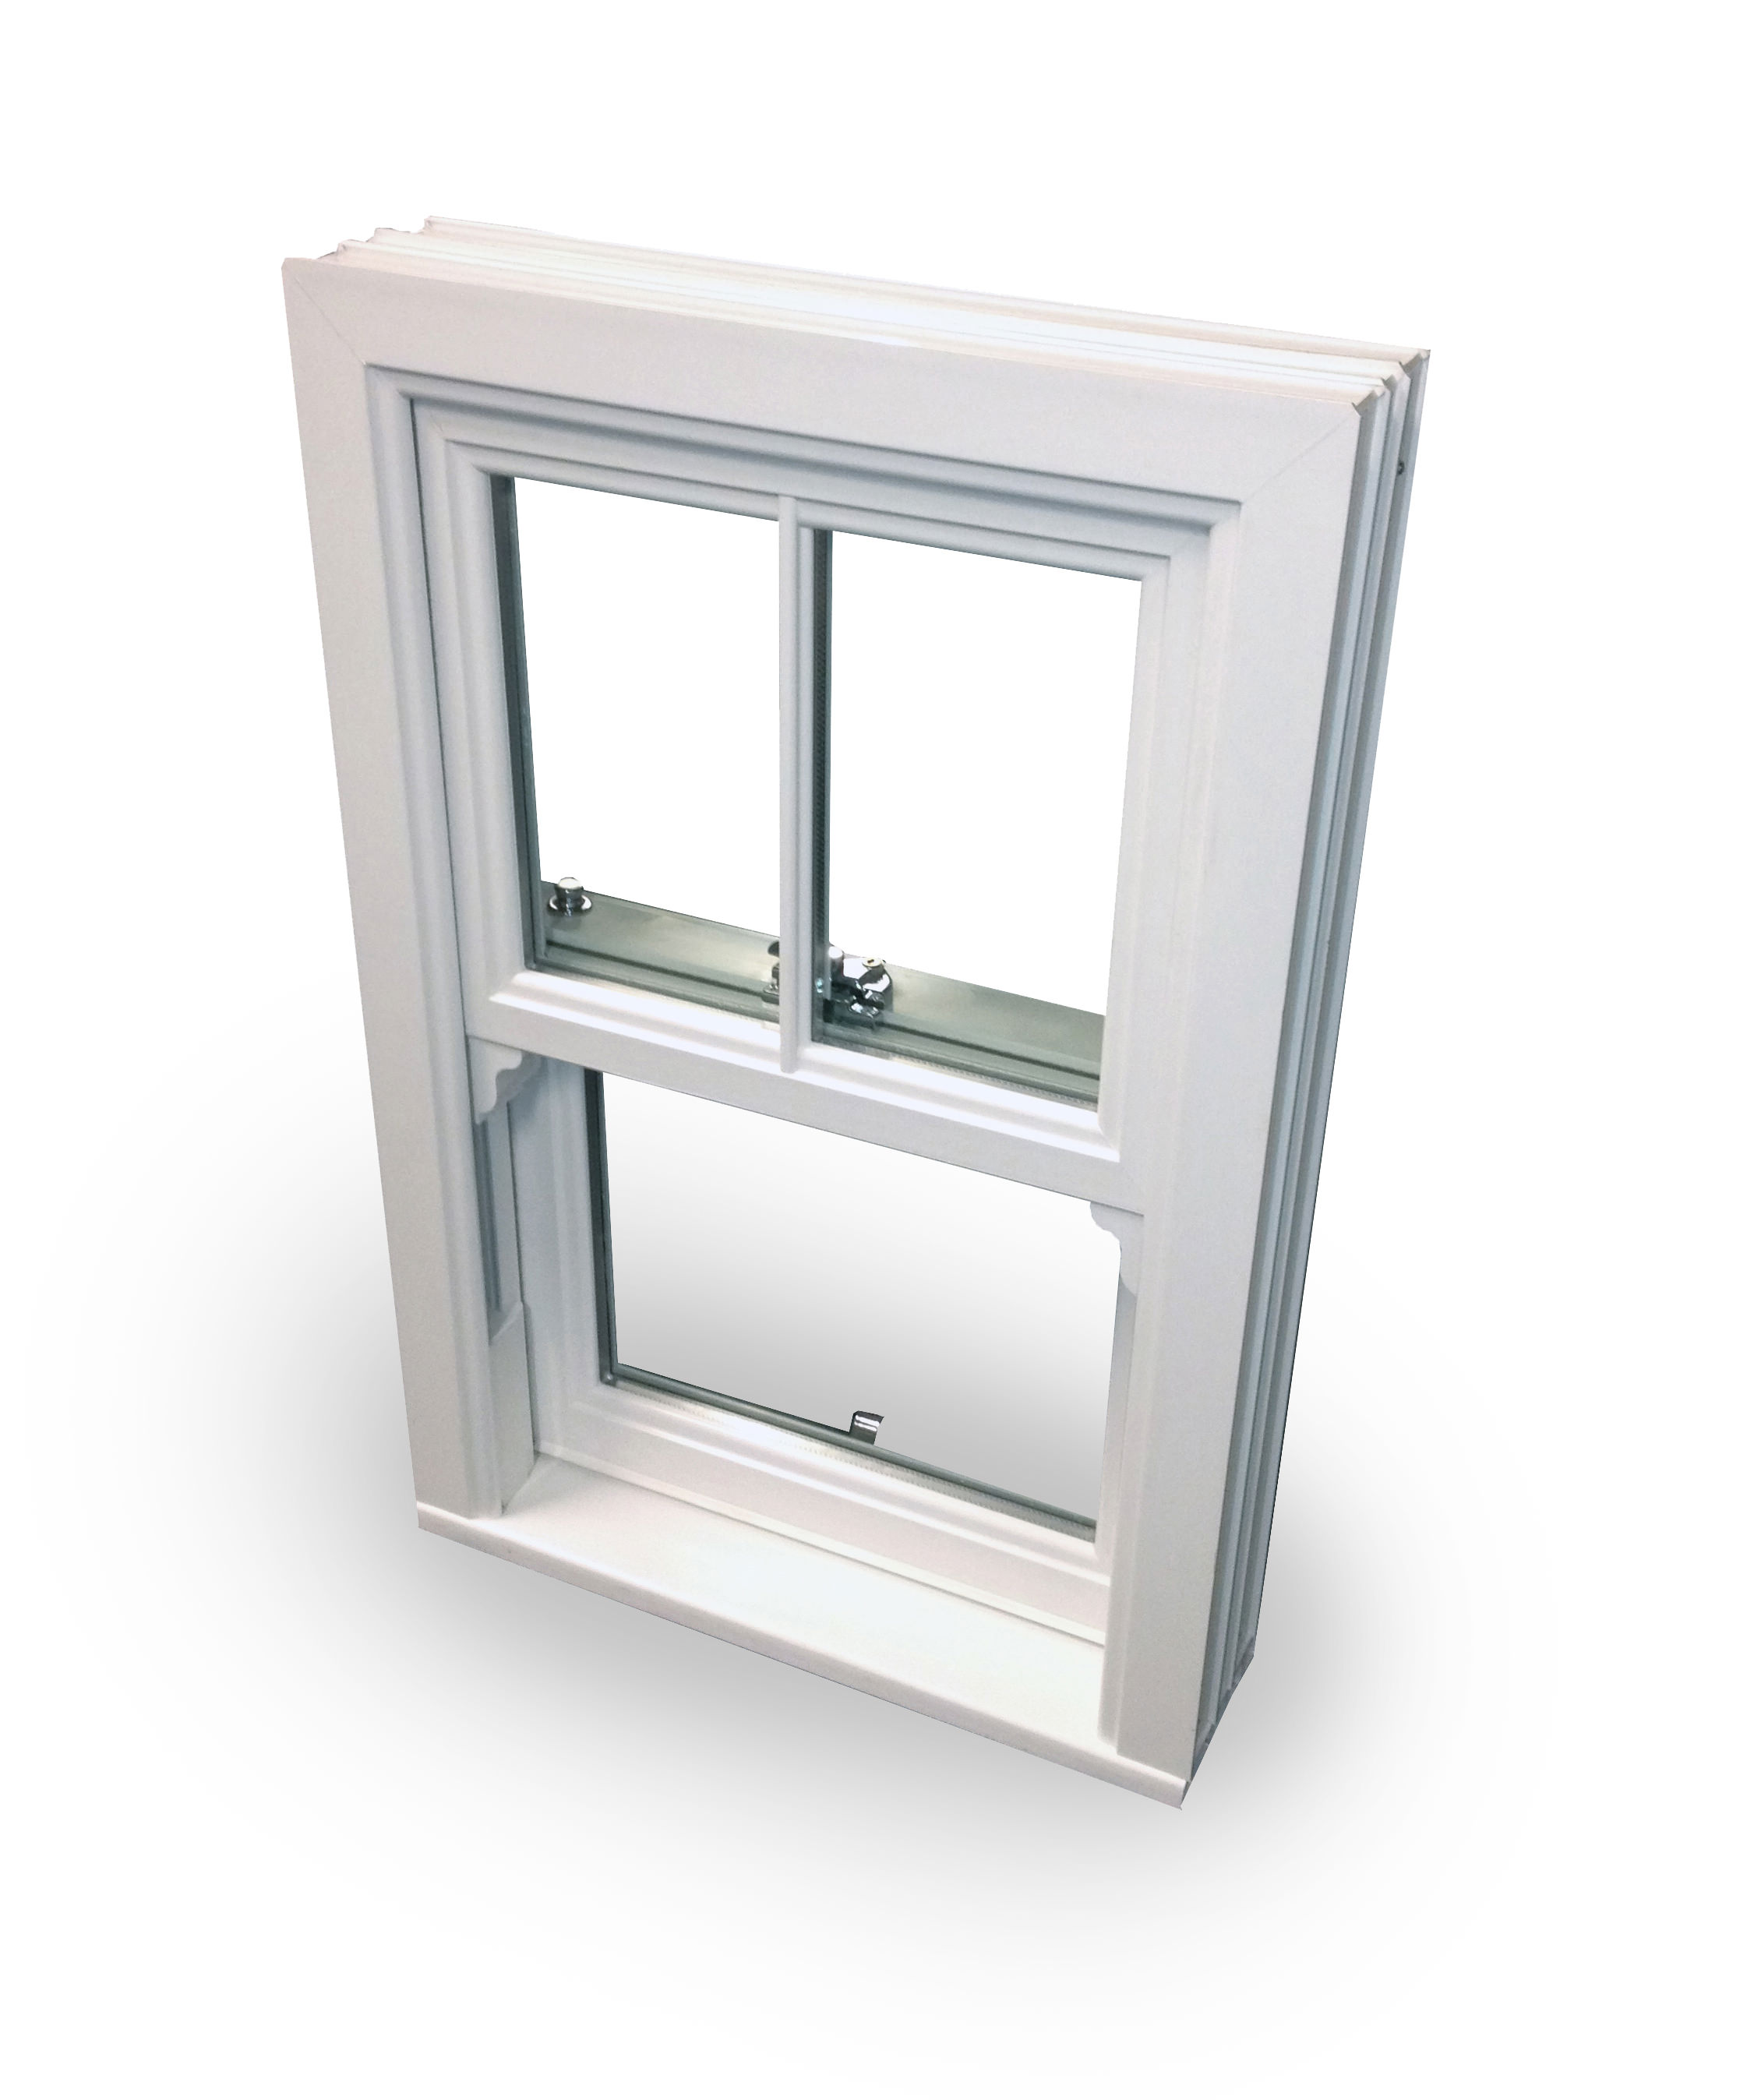 Sliding Sash Windows Fleet